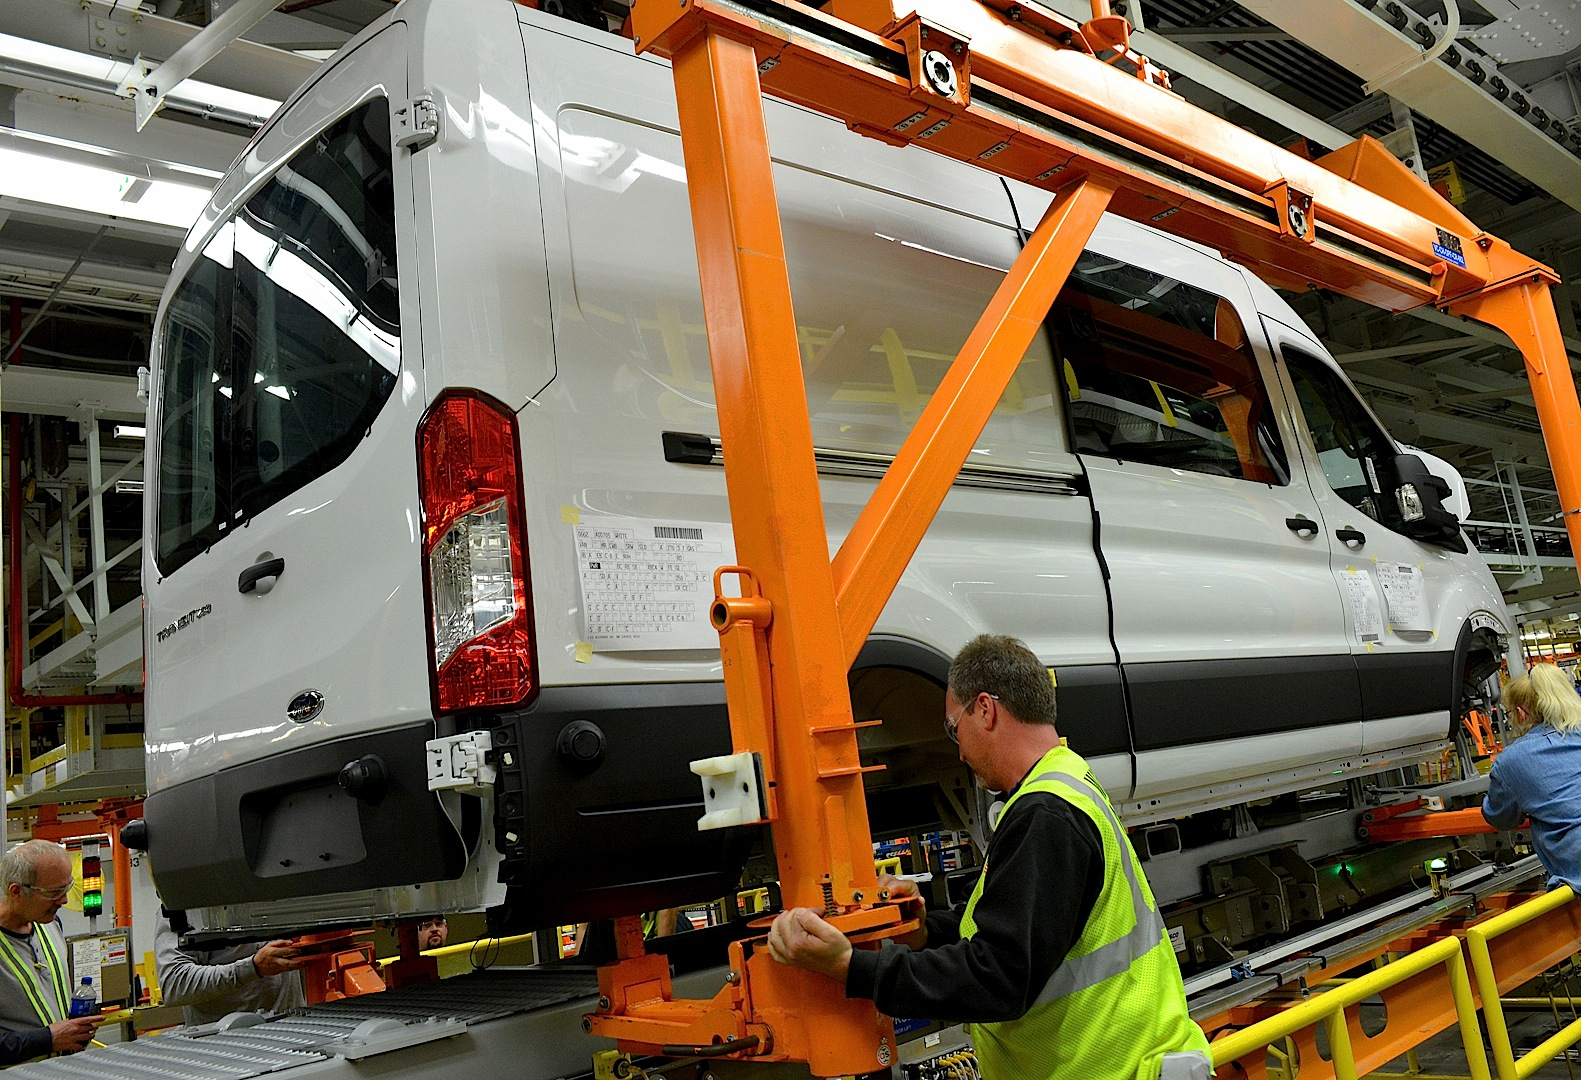 2013 - [Ford] Transit (Connect & MaxiVan) - Page 4 Ford-starts-2015-transit-van-production-photo-gallery_2